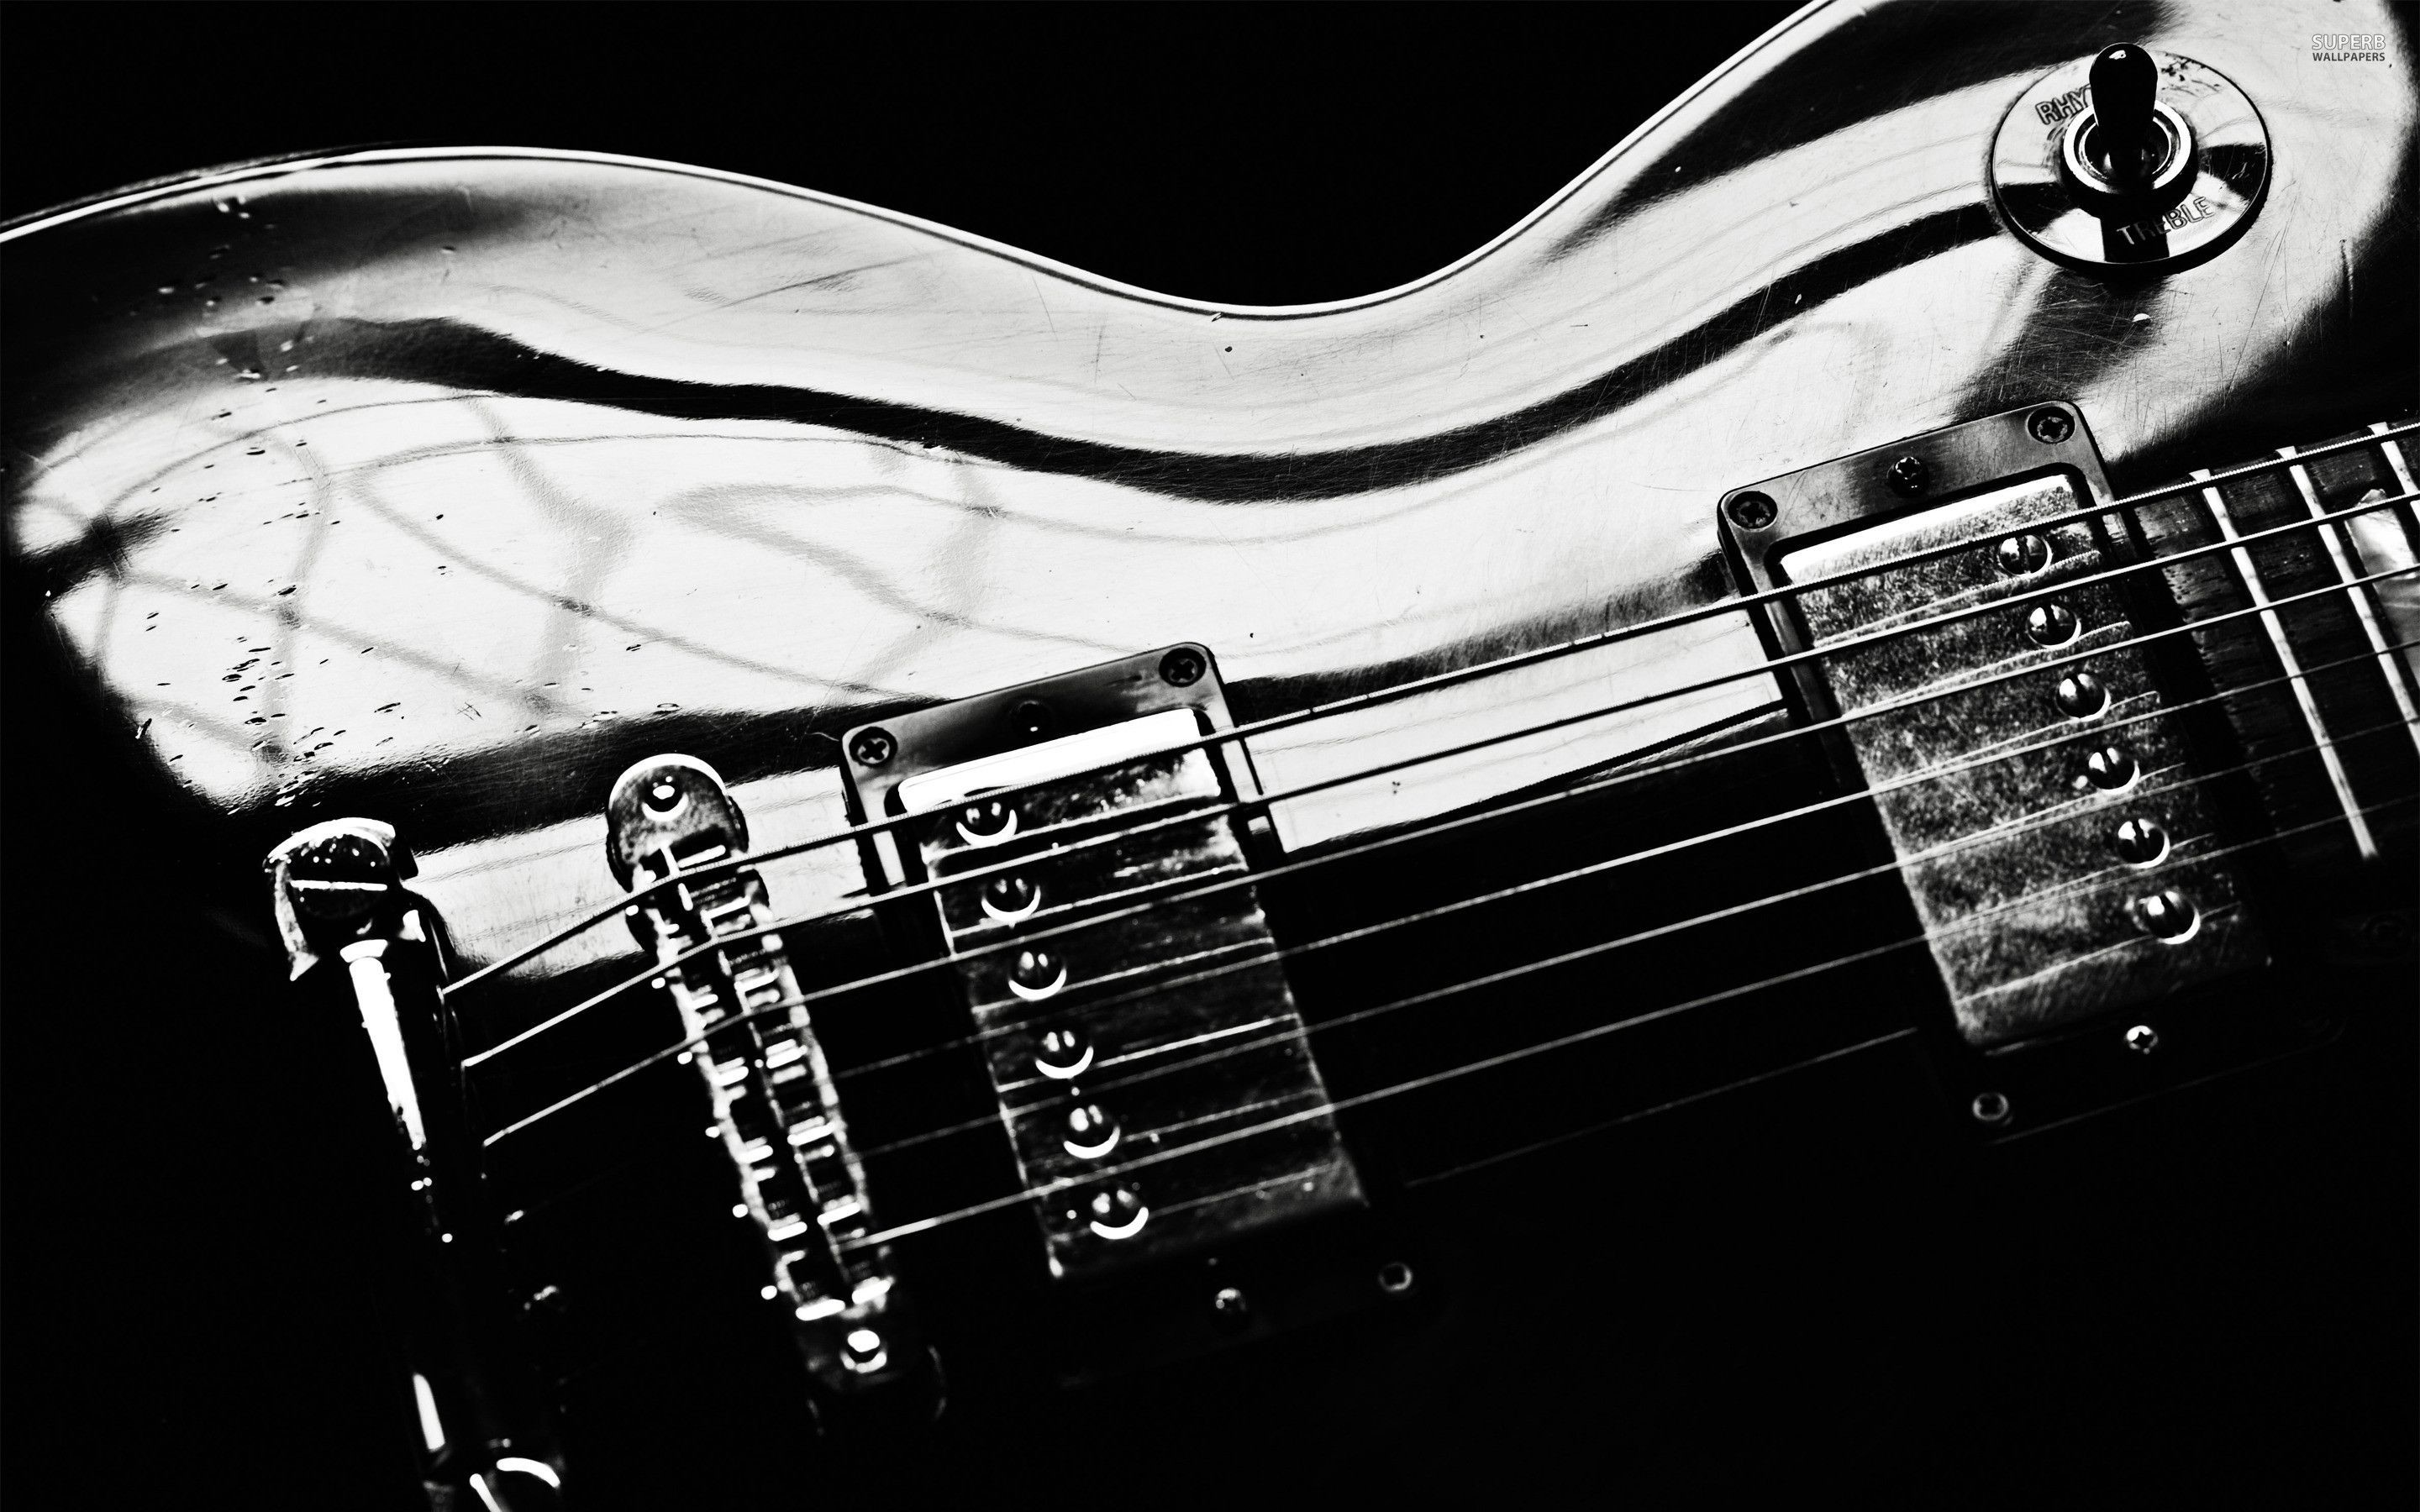 2880x1800 Awesome Gallery of Guitars Backgrounds:  - HD Wallpapers